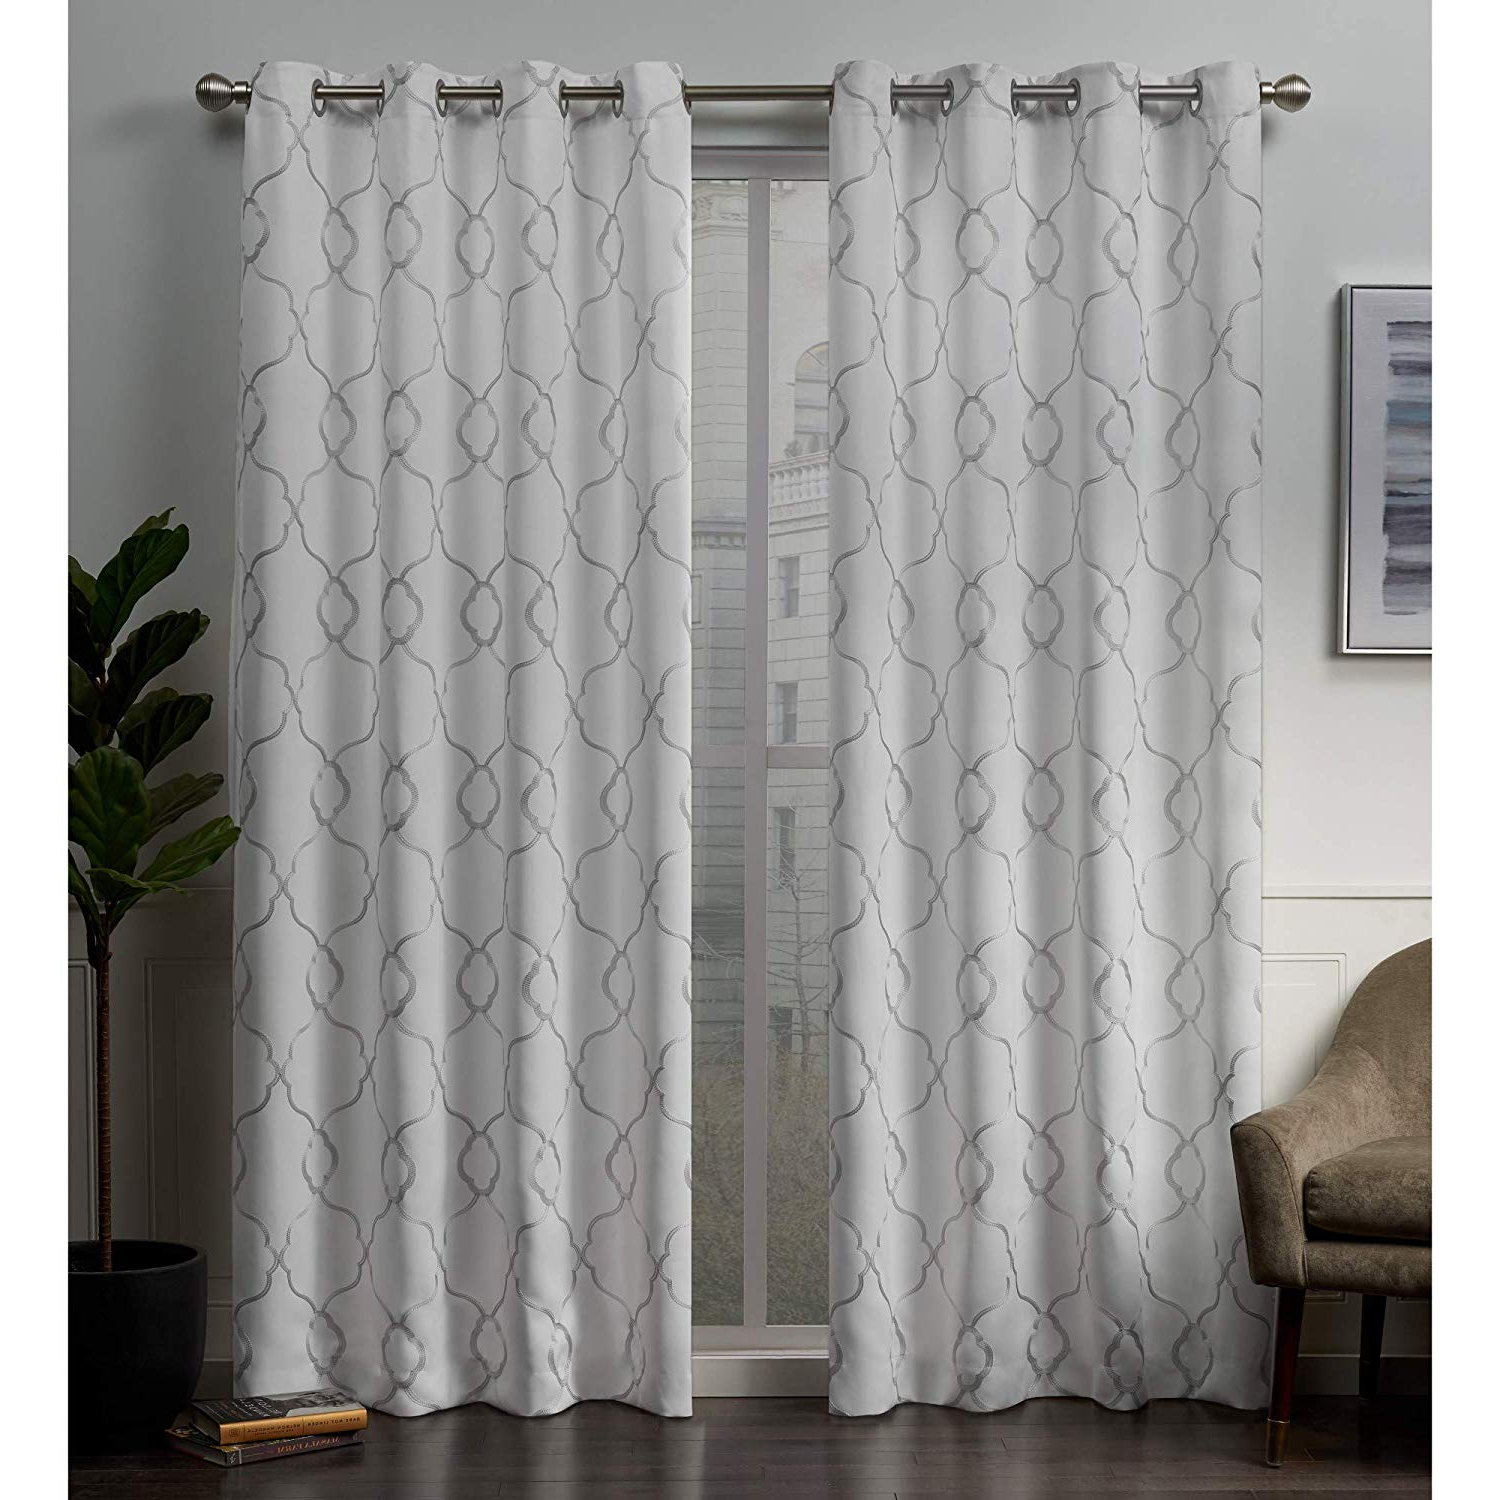 Exclusive Home Curtains Belmont Embroidered Woven Blackout Grommet Top  Curtain Panel Pair, 52X96, Winter Regarding Fashionable Woven Blackout Grommet Top Curtain Panel Pairs (Gallery 2 of 20)